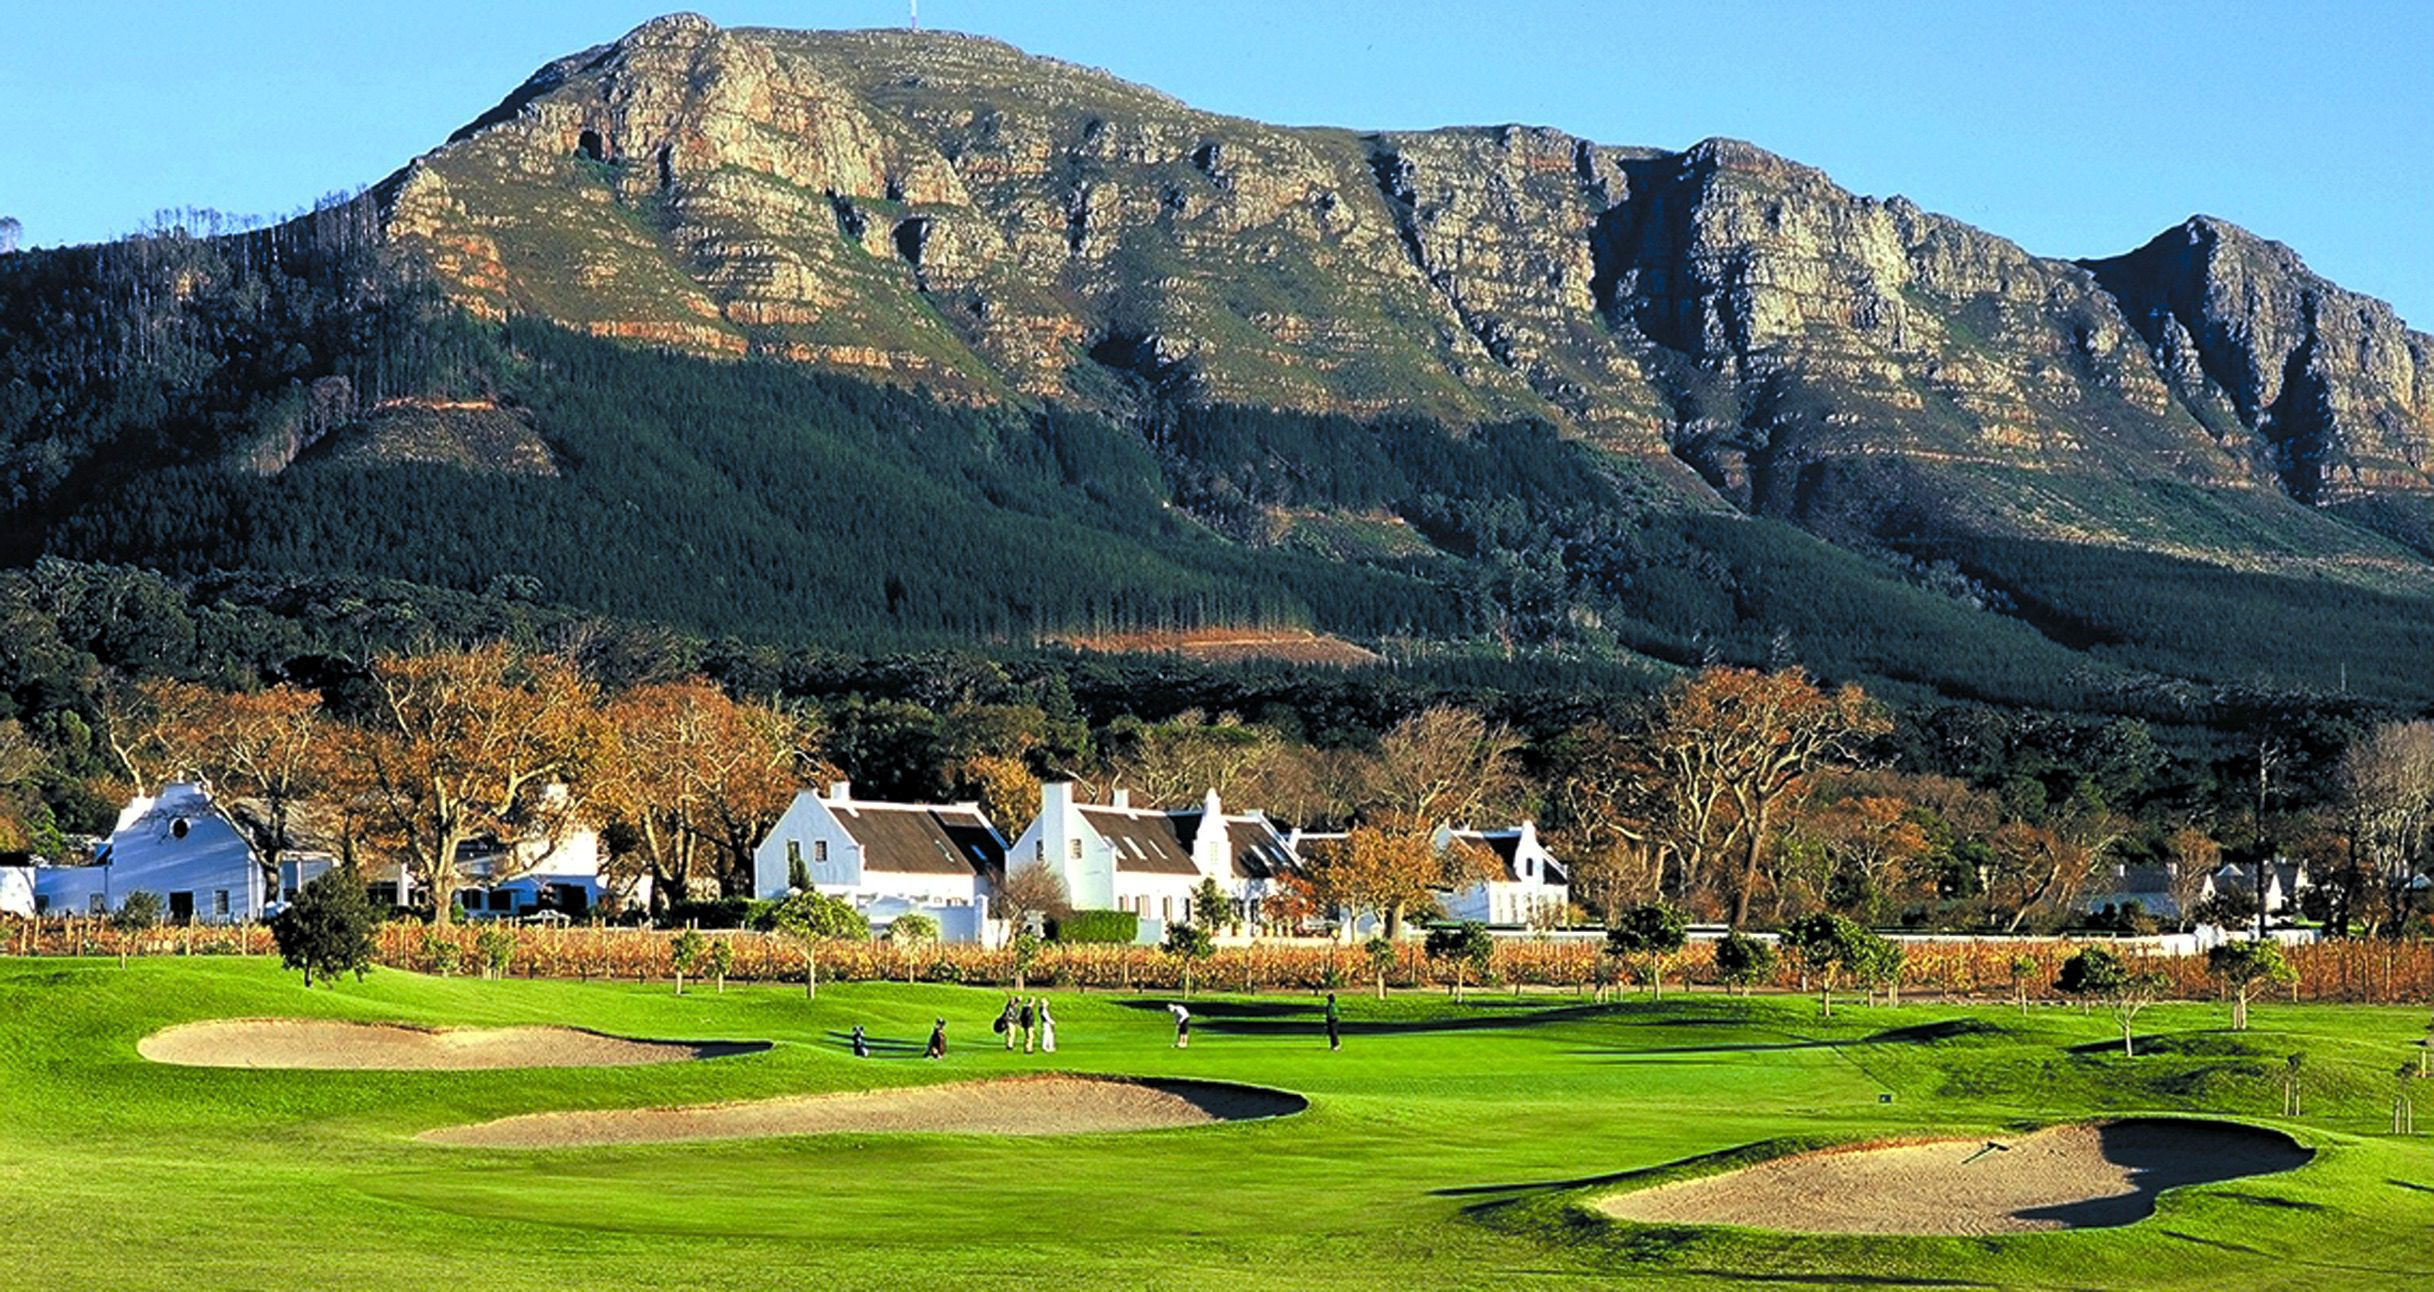 Steenberg Hotel in Cape Town with dramatic mountains behind enjoyed on a golf safari